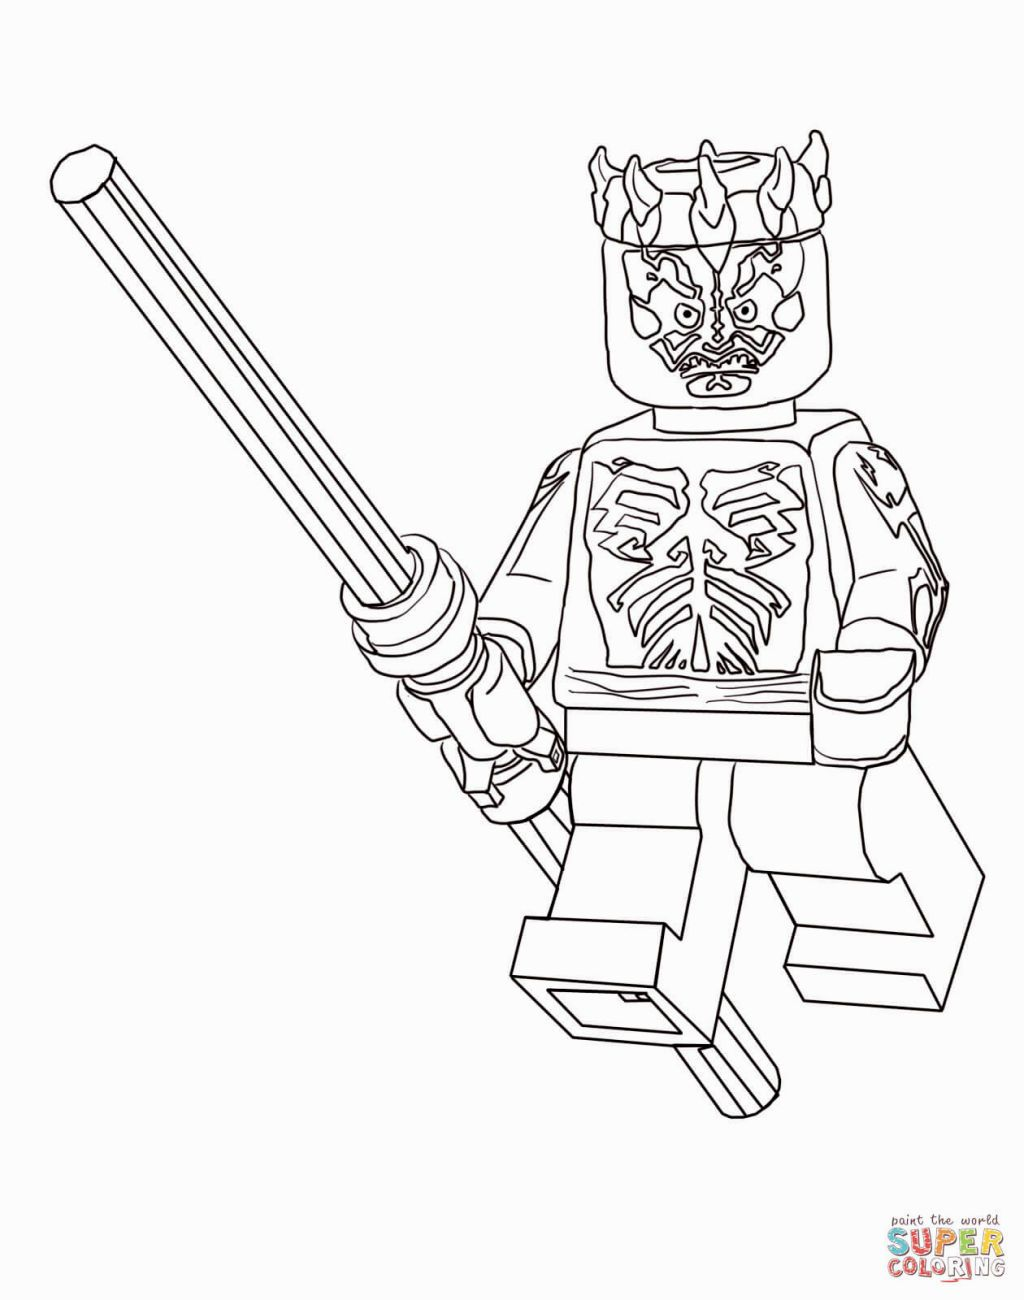 Lego Star Wars Coloring | Coloring Pages | Pinterest